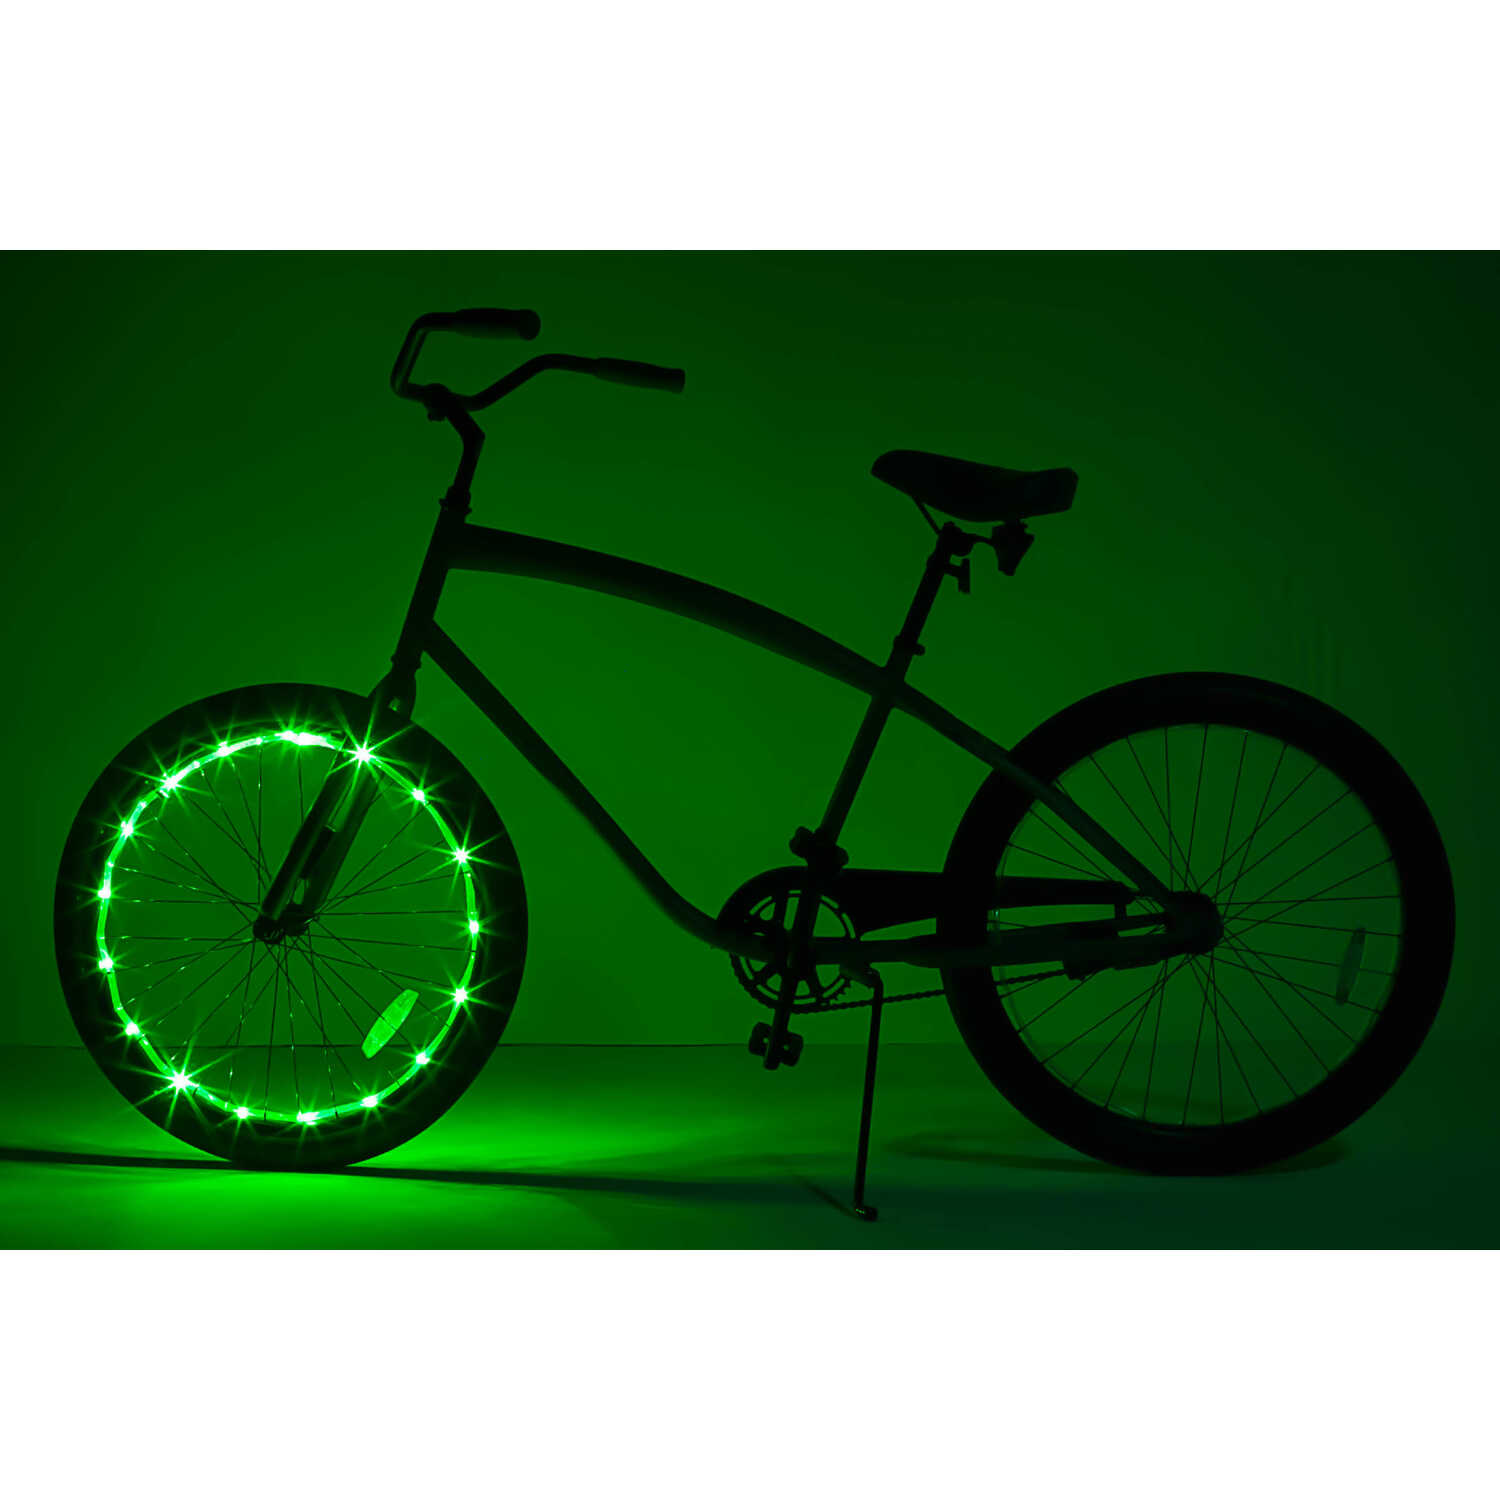 Brightz Ltd.  WheelBrightz  LED Bicycle Light Kit  ABS Plastics/Polyurethane/Electronics  1 pk